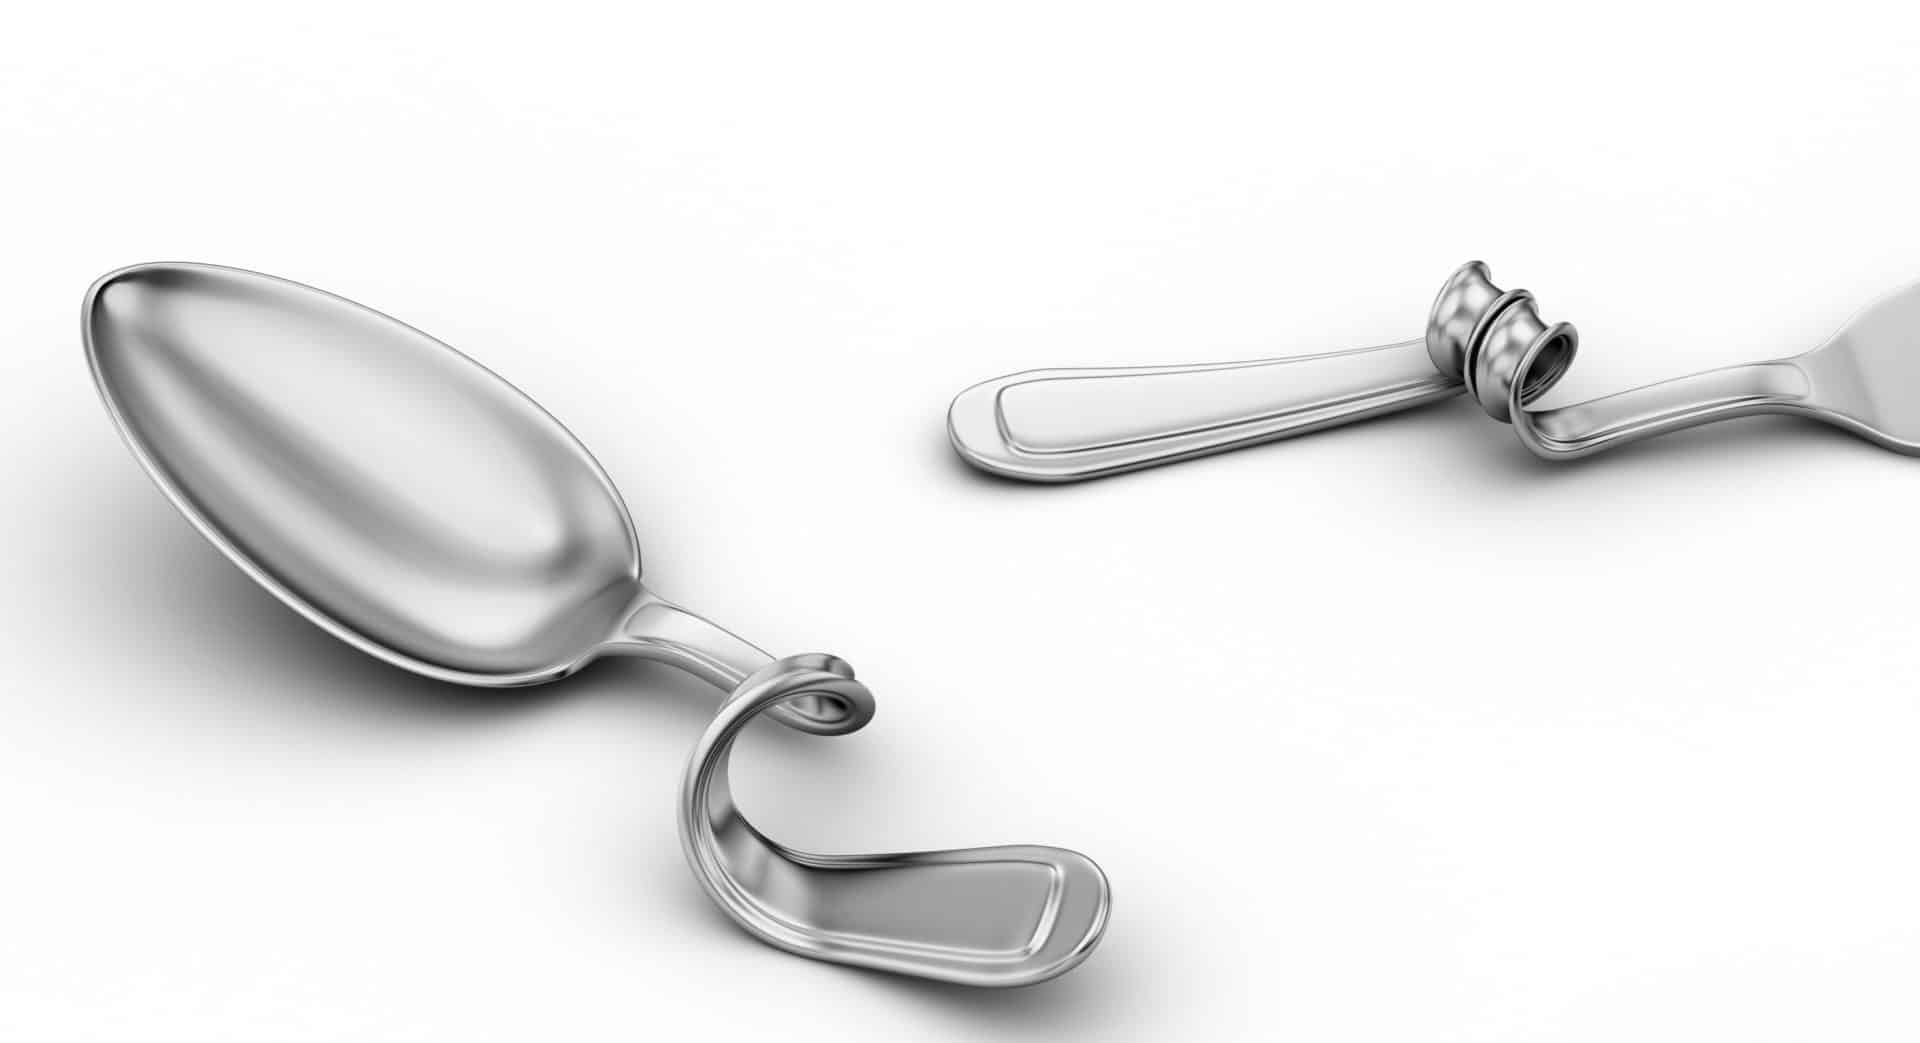 Spoon Bending Without Force